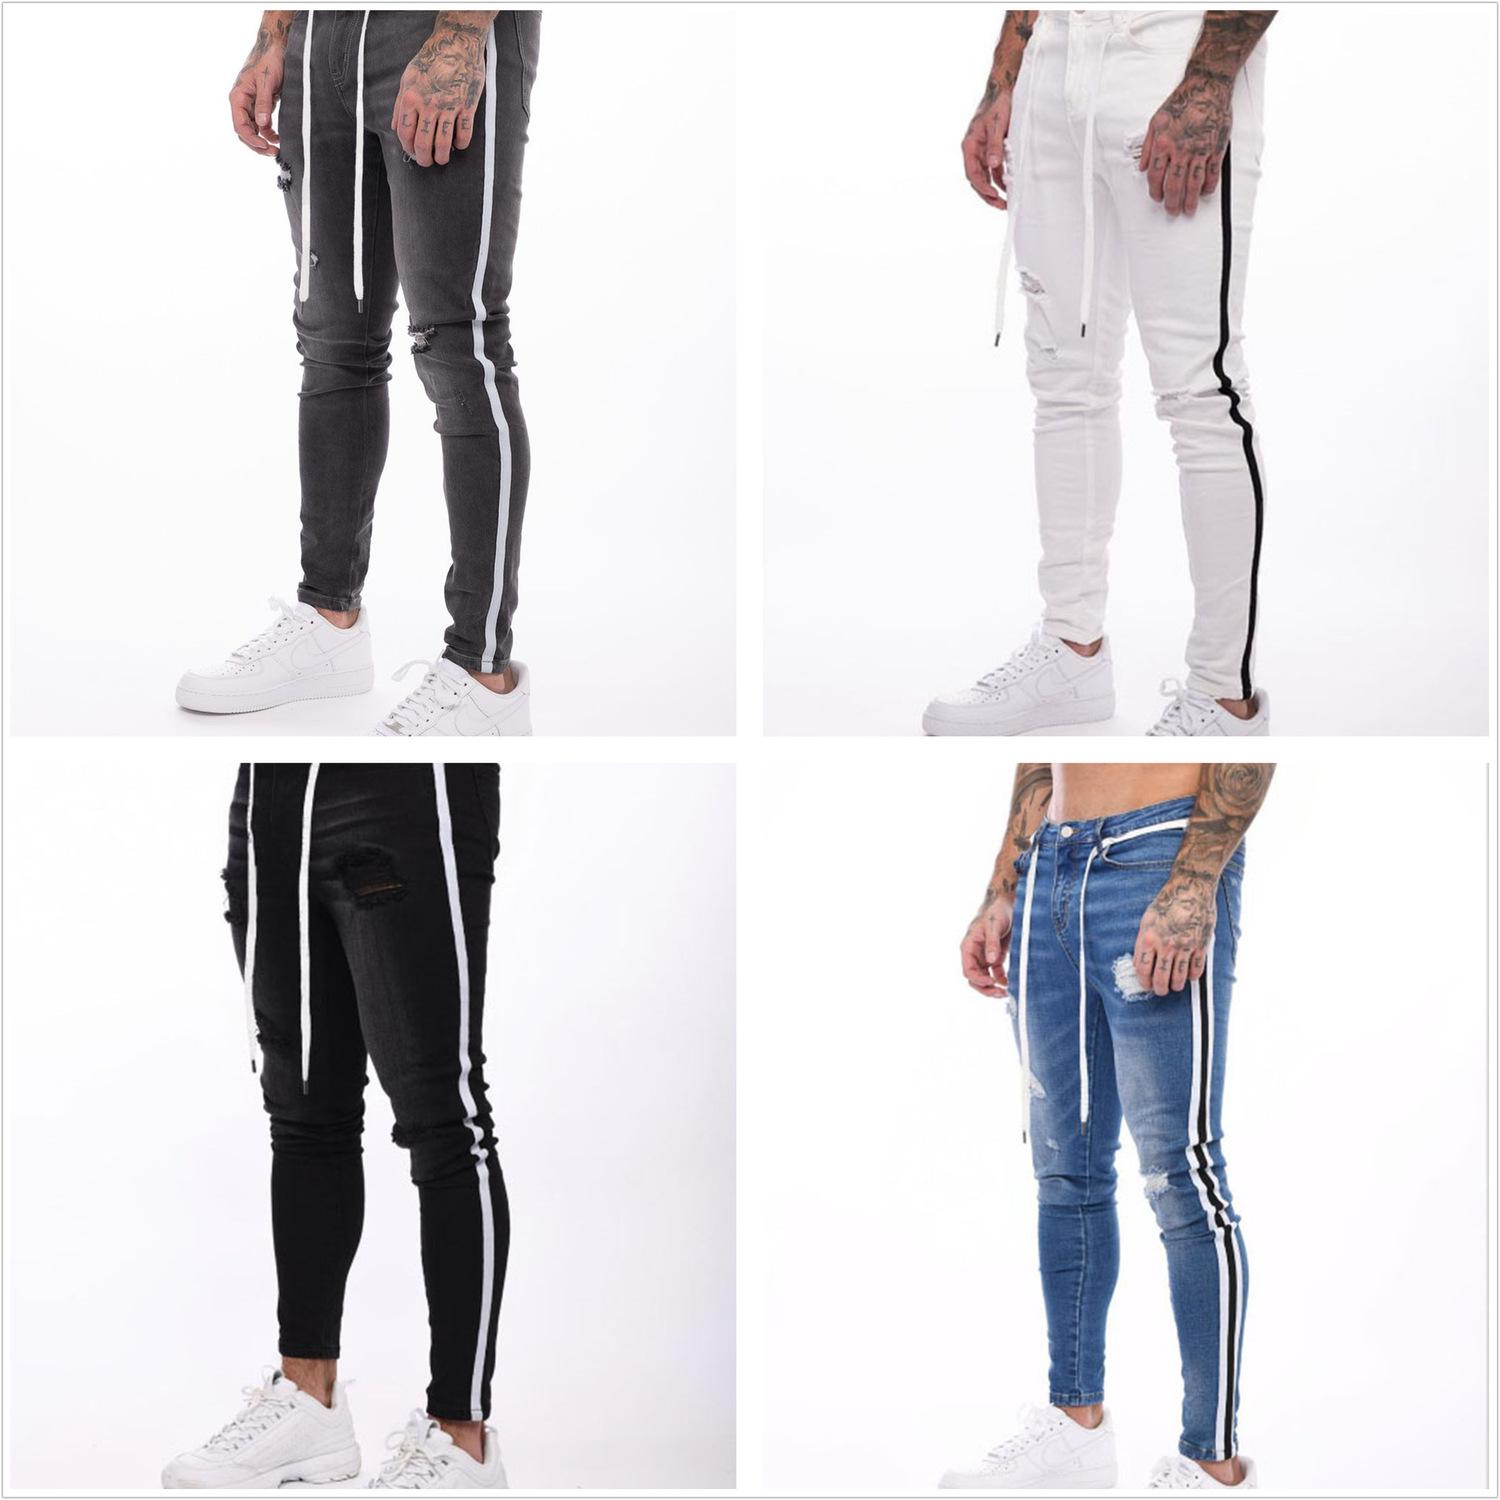 Men's Skinny Stretch Ripped Jeans HipHop Distred Skinny Slim Fit Jean Pants Damaged Pants Street ropa de hombre jeans